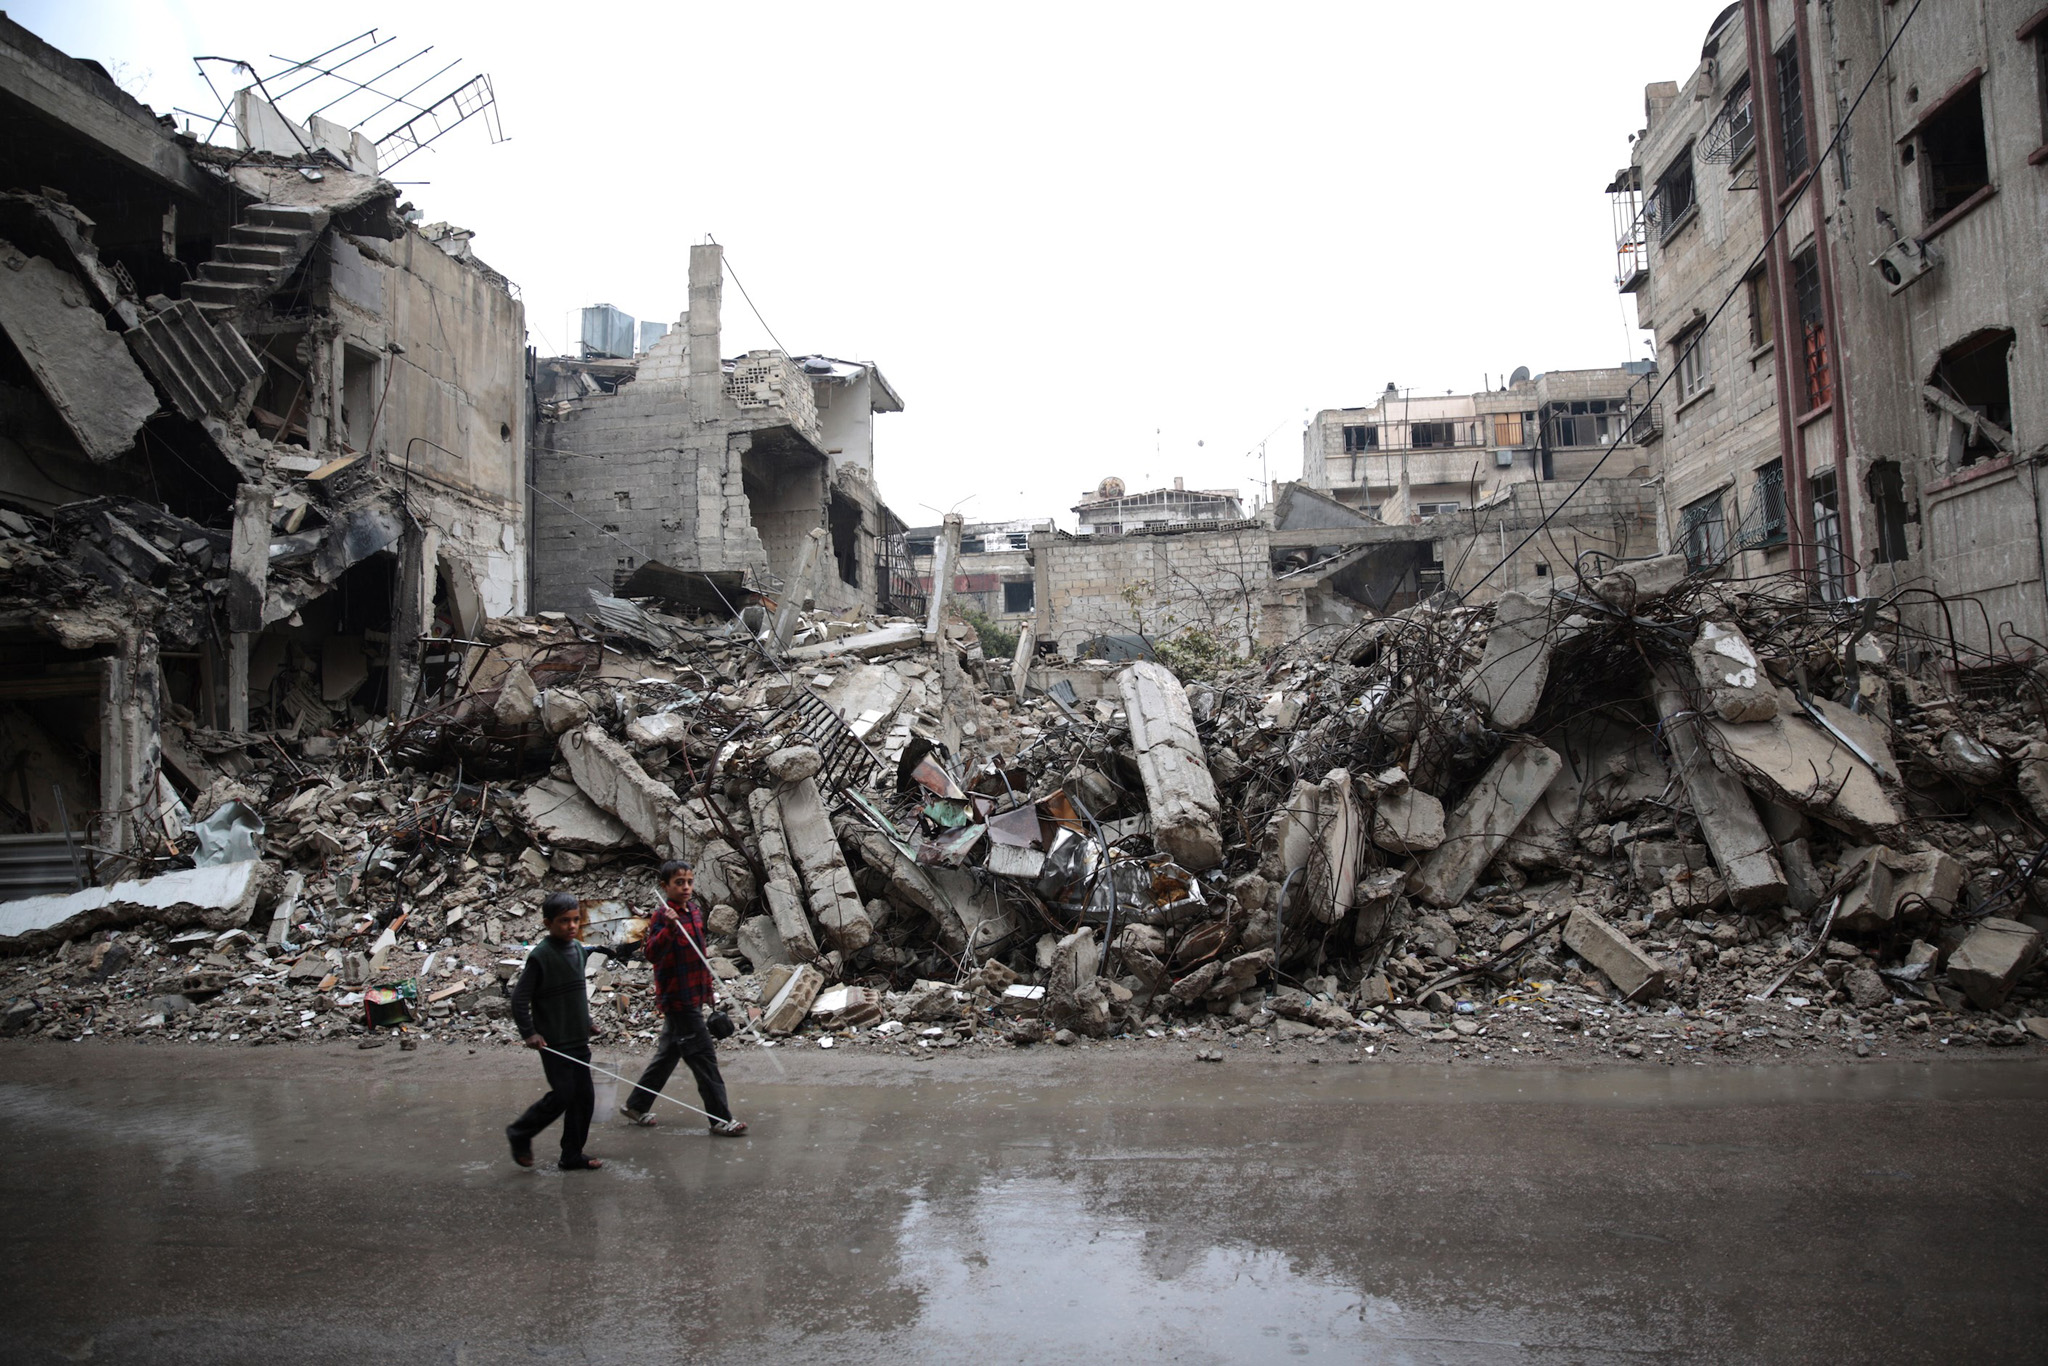 Syrian children walk past the rubble of destroyed buildings in the rebel-held area of Douma, east of the Syrian capital Damascus